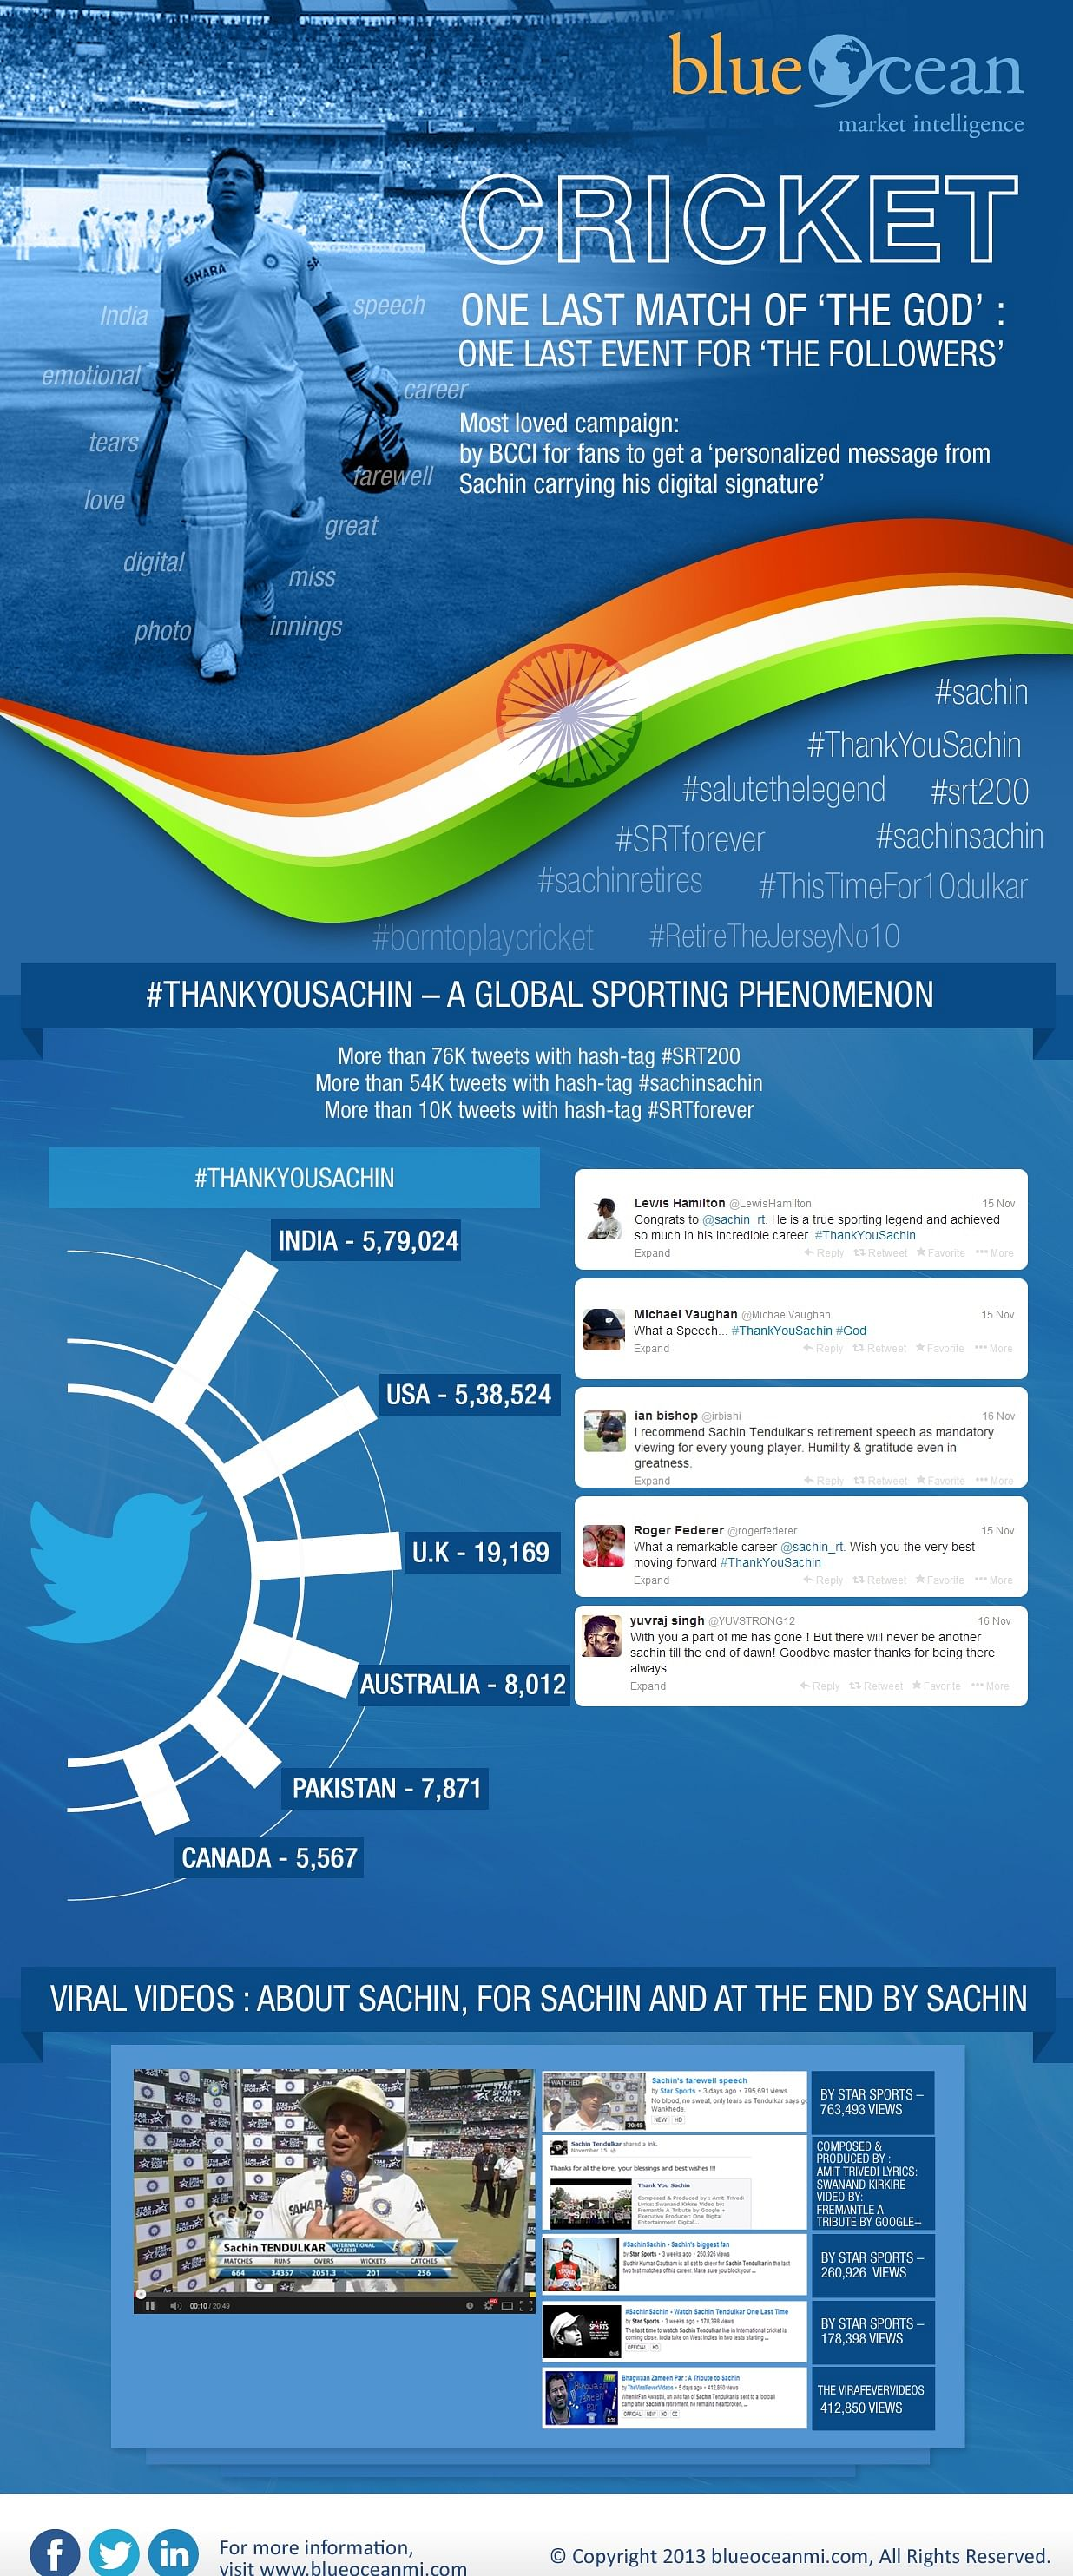 Infographic: Social media findings of Sachin Tendulkar's farewell